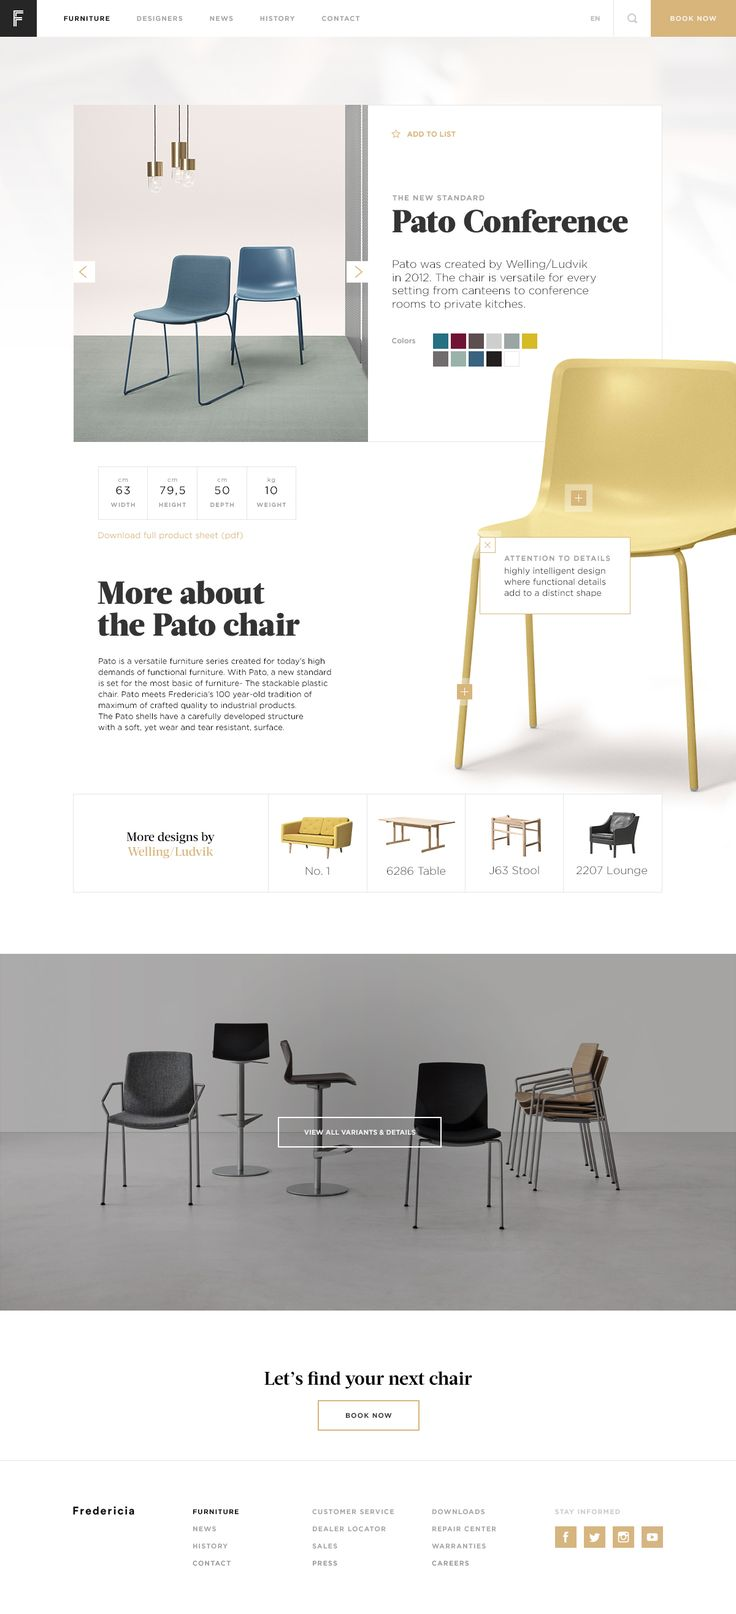 Fredericia Furniture redesign by Mikael Waaben Blædel